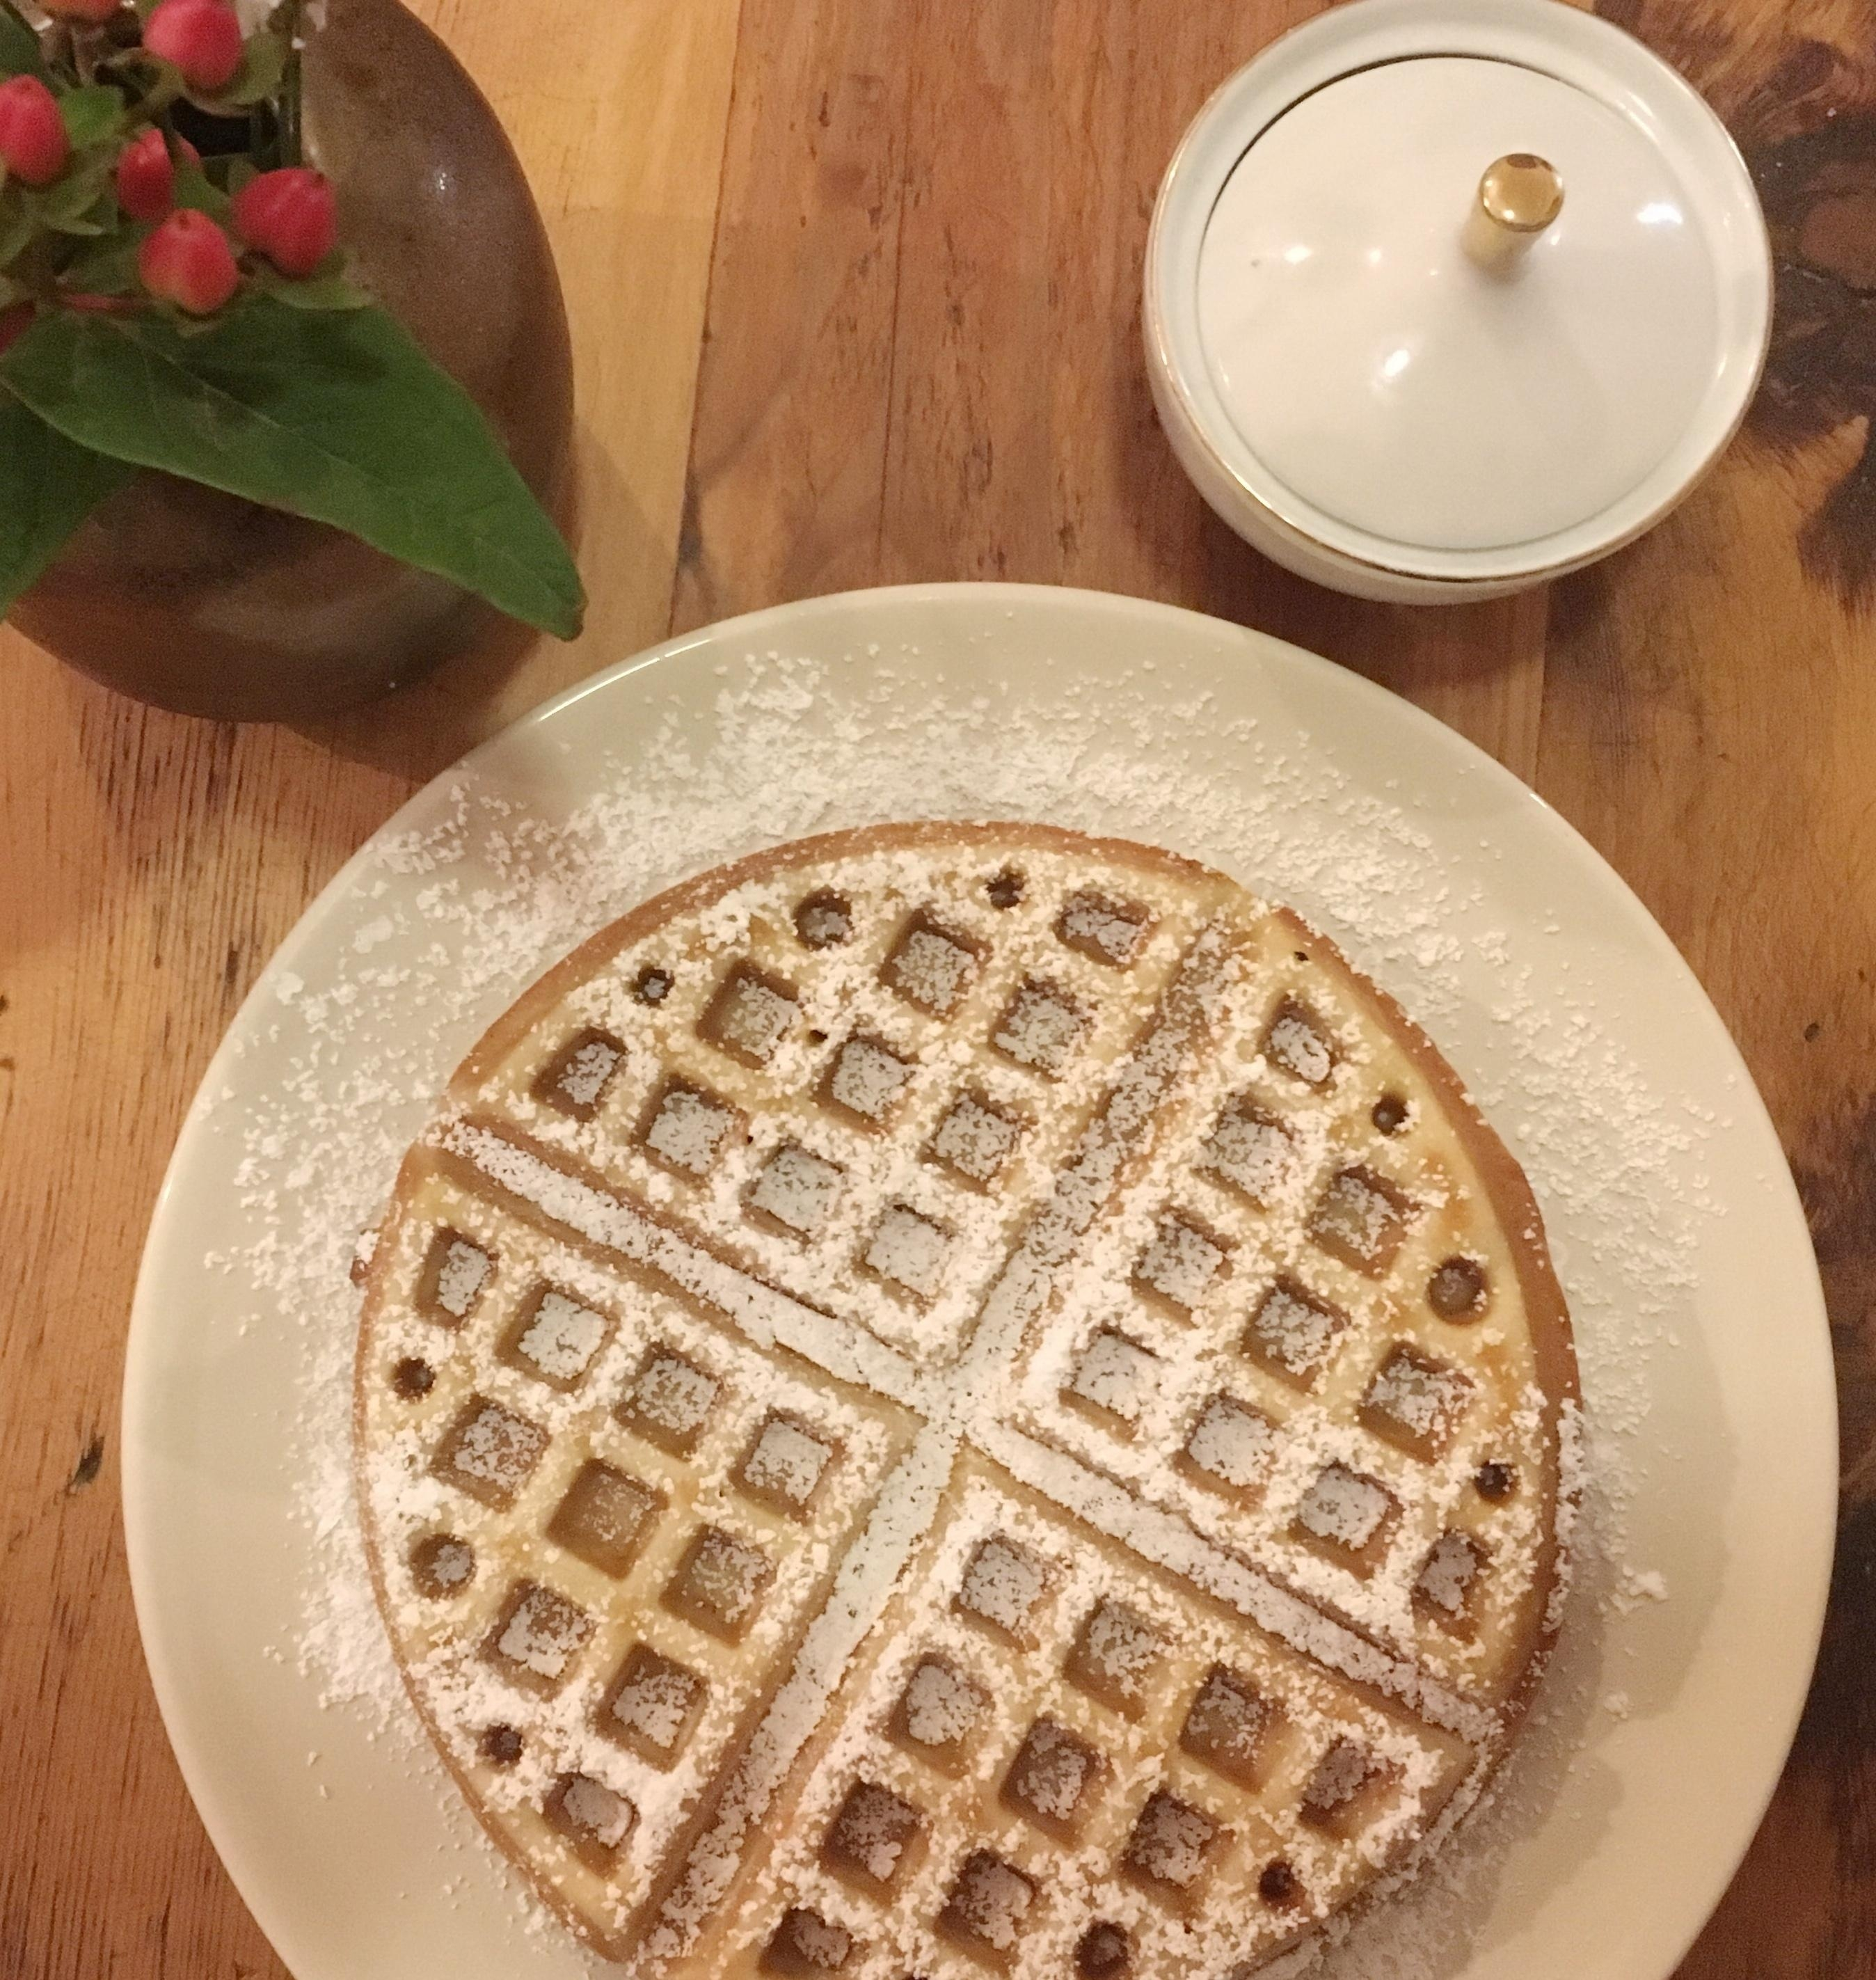 November sunday at its best  waffeln cozy sundaymood  f6c0ebfa 05f3 4f94 8b38 af4f3f097b94